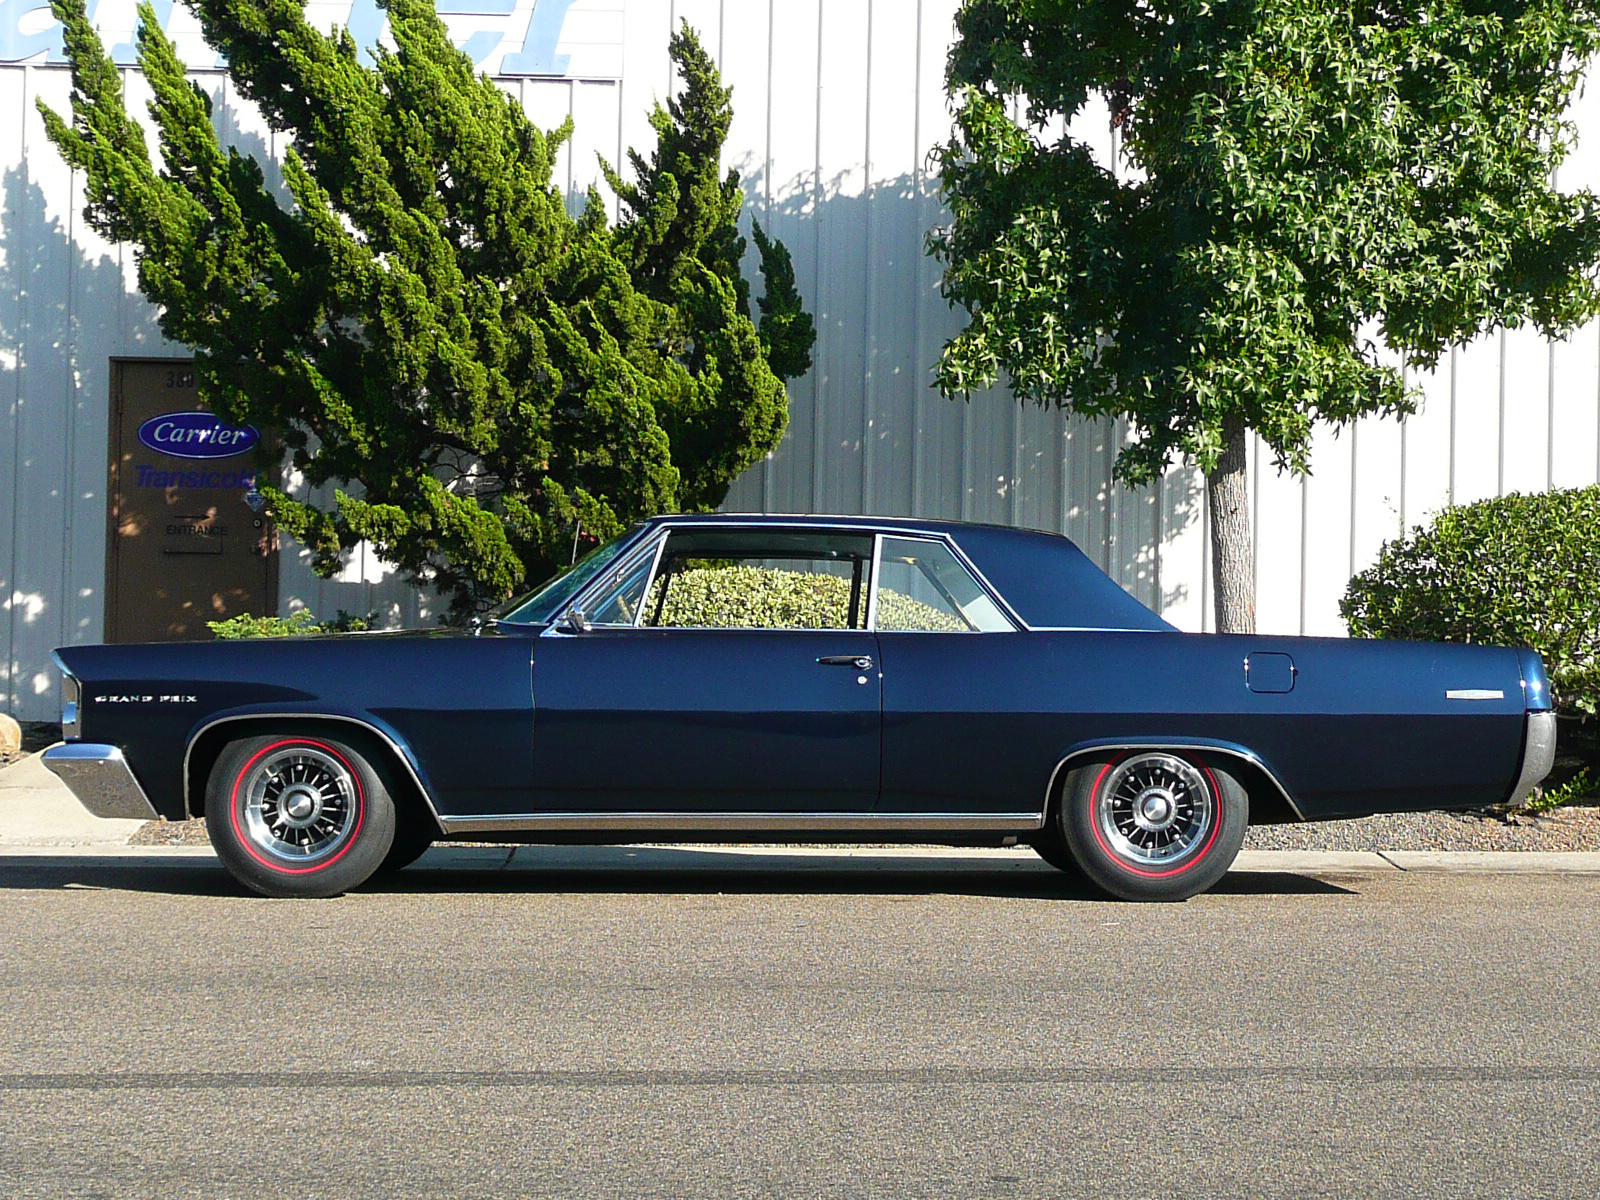 1963 PONTIAC GRAND PRIX 2 DOOR HARDTOP - Side Profile - 80970